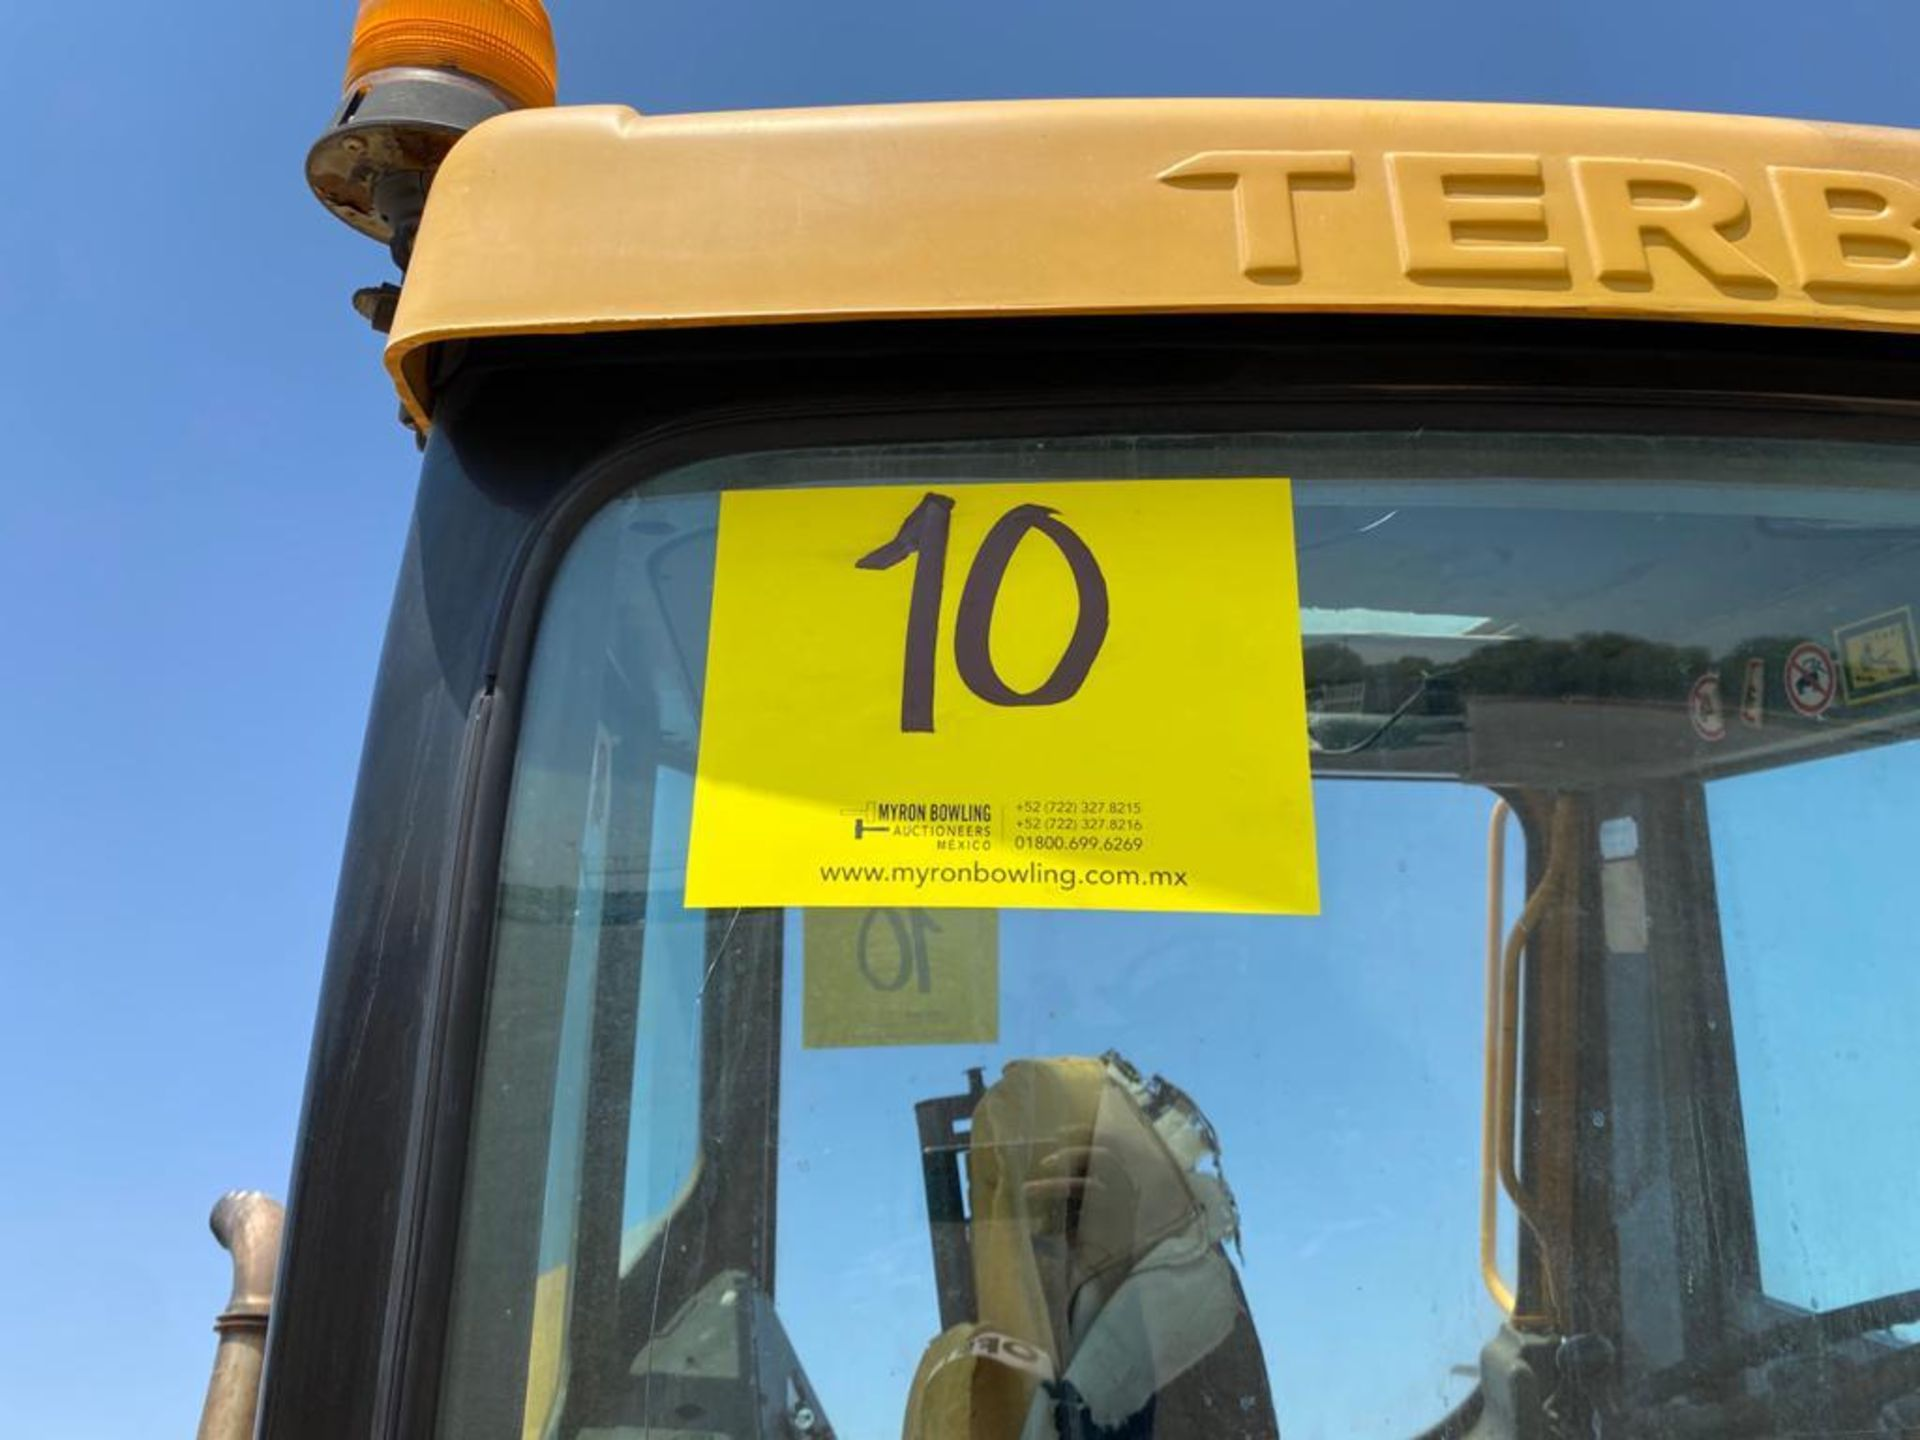 Terberg Capacity 2002 Terminal Tractor, automatic transmission, with Volvo motor - Image 28 of 28